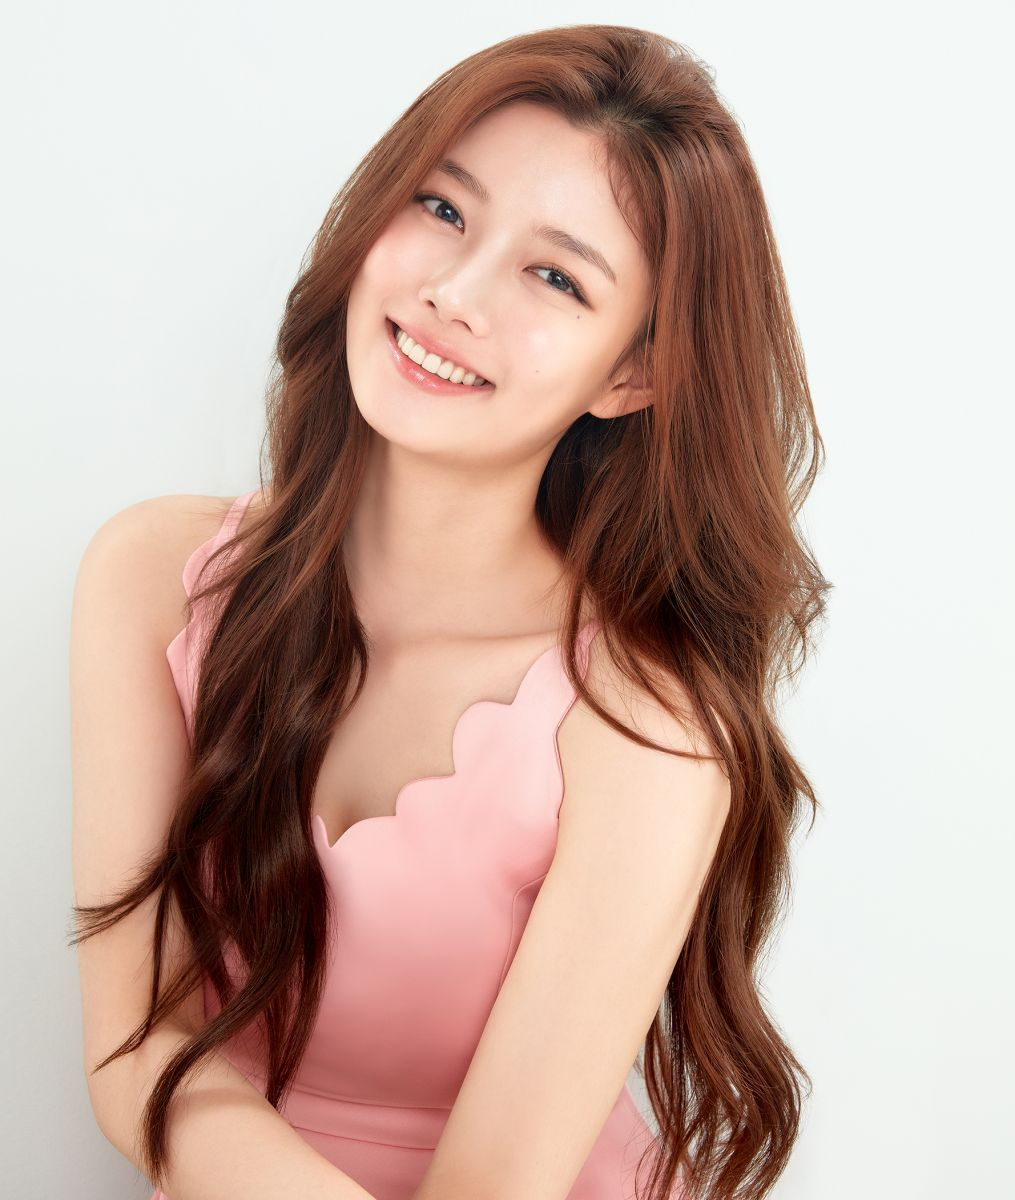 Celebrites Kim Yoo-Yeon nudes (26 photos), Topless, Fappening, Boobs, lingerie 2017